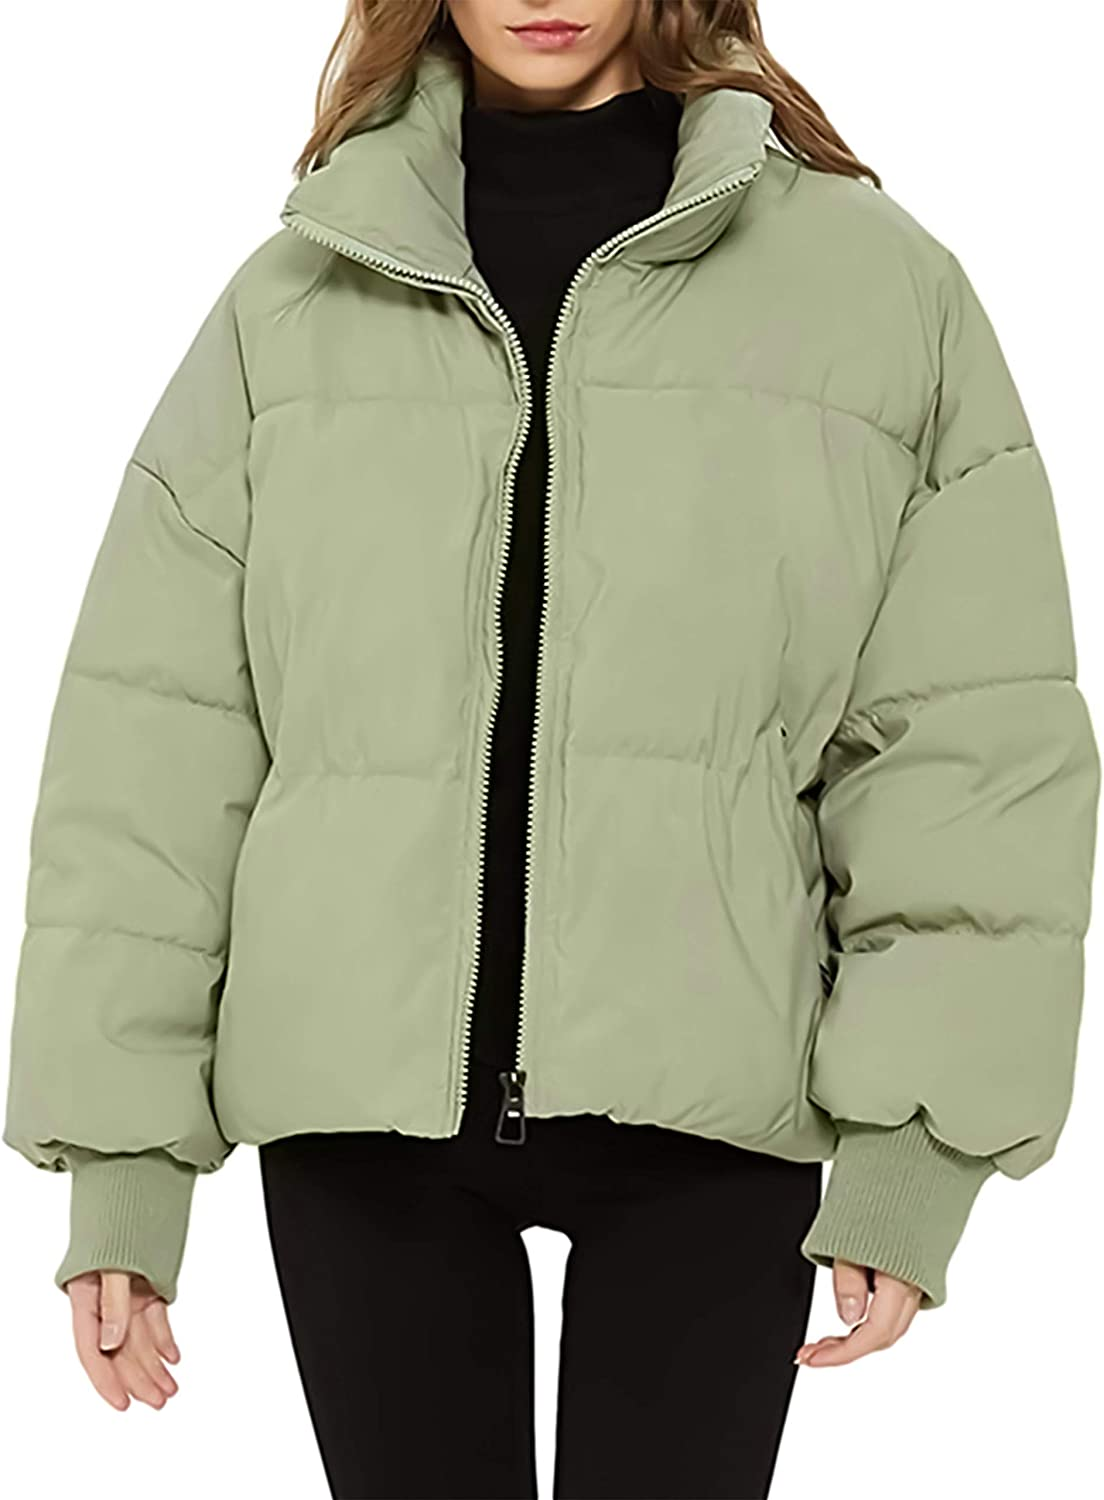 Tanming Womens Zip Up Drop Shoulder Quilted Padded Bubble Coat Puffer Jacket